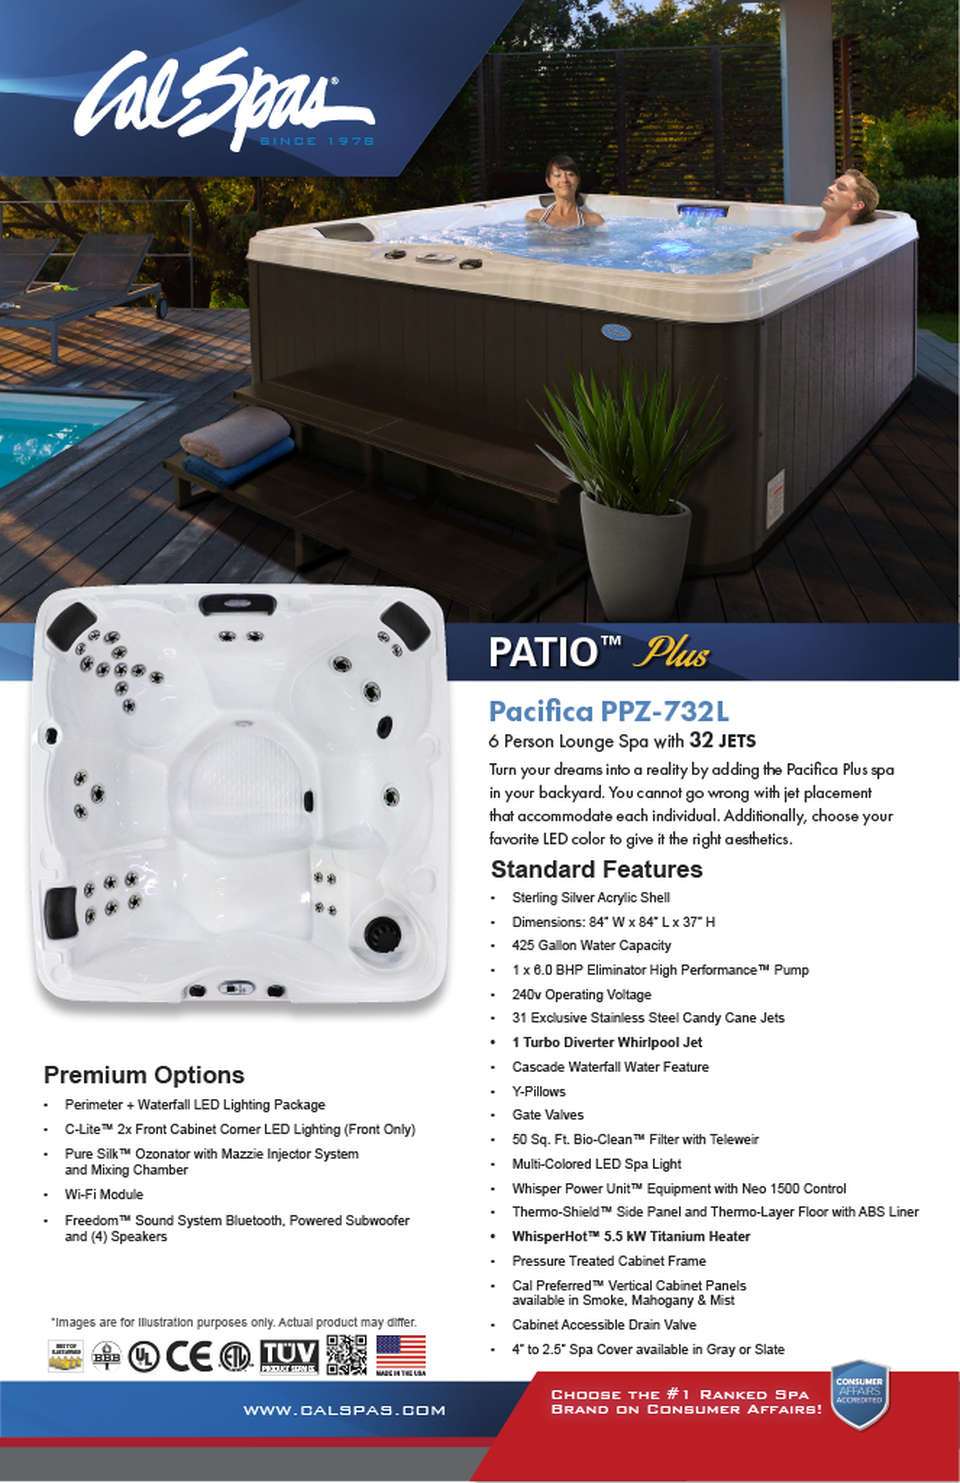 Cal Spas Patio Plus Series Pacifica